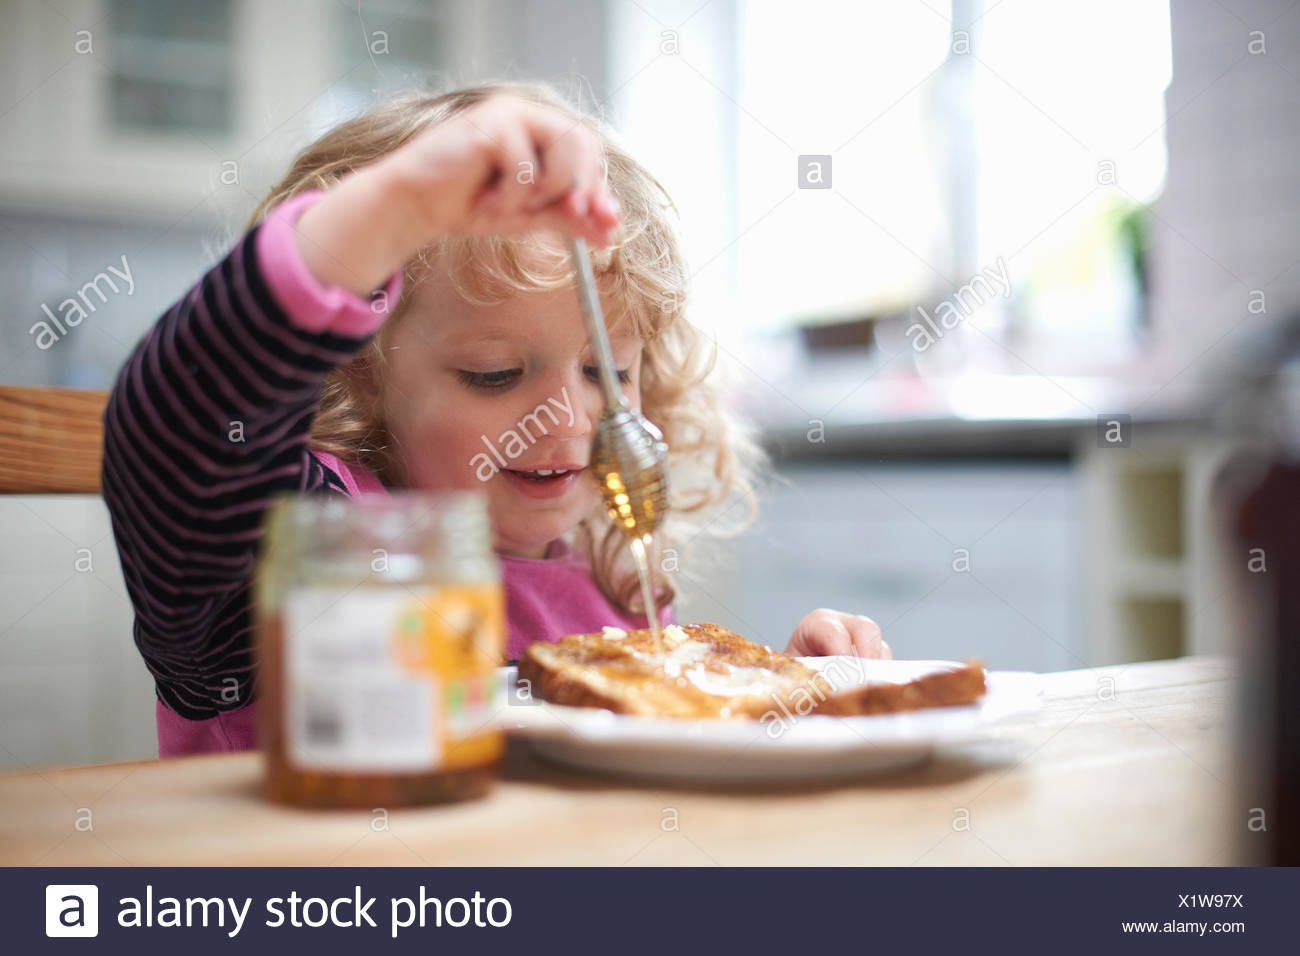 Young girl sitting at kitchen table, drizzling honey on toast - Stock Image